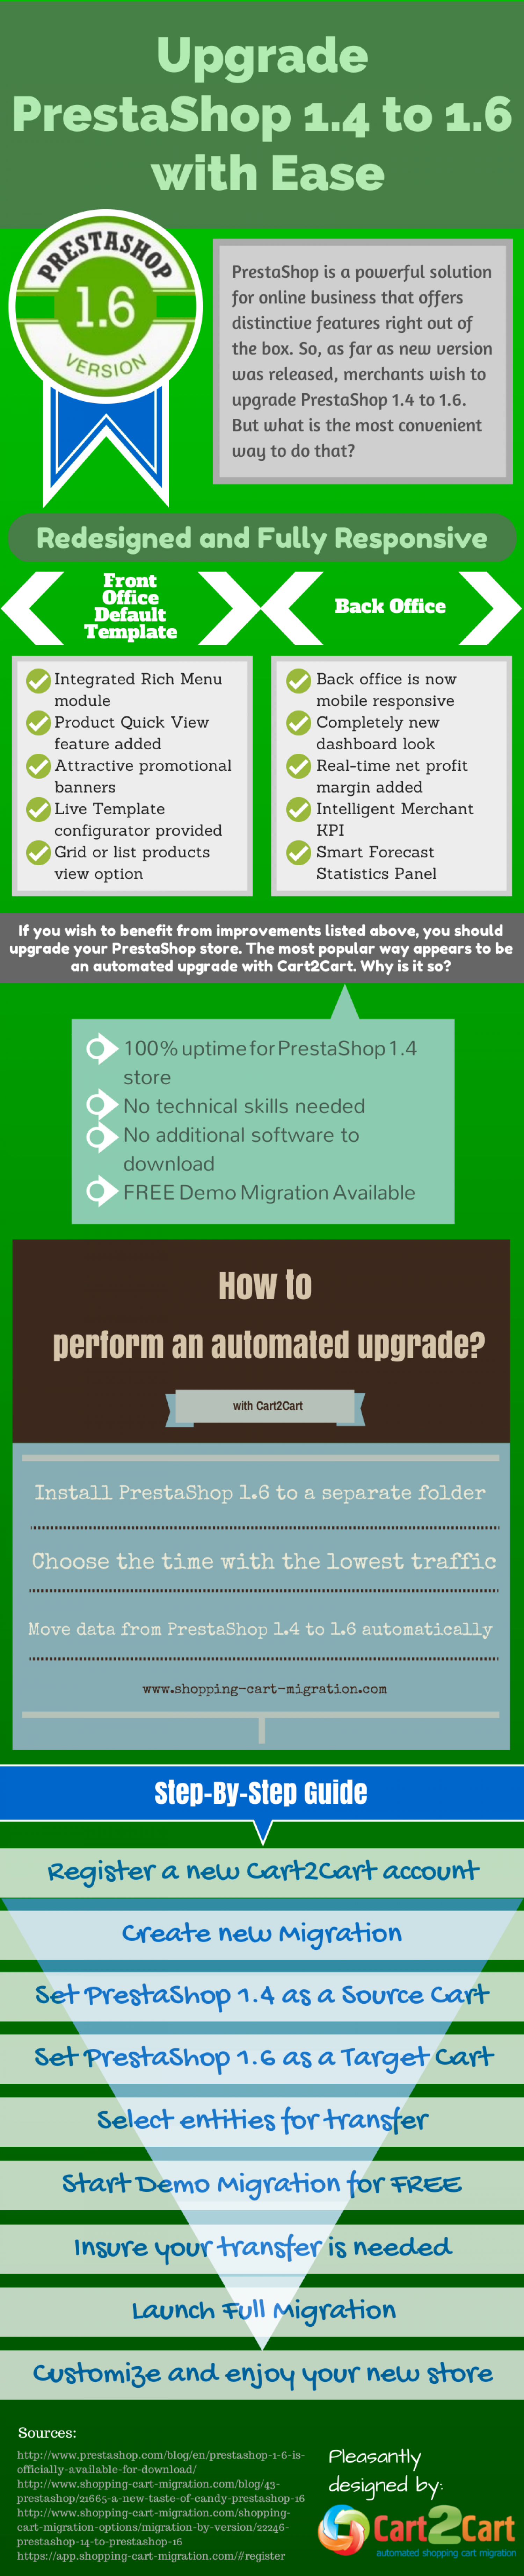 Upgrade PrestaShop 1.4 to 1.6 with Ease  Infographic